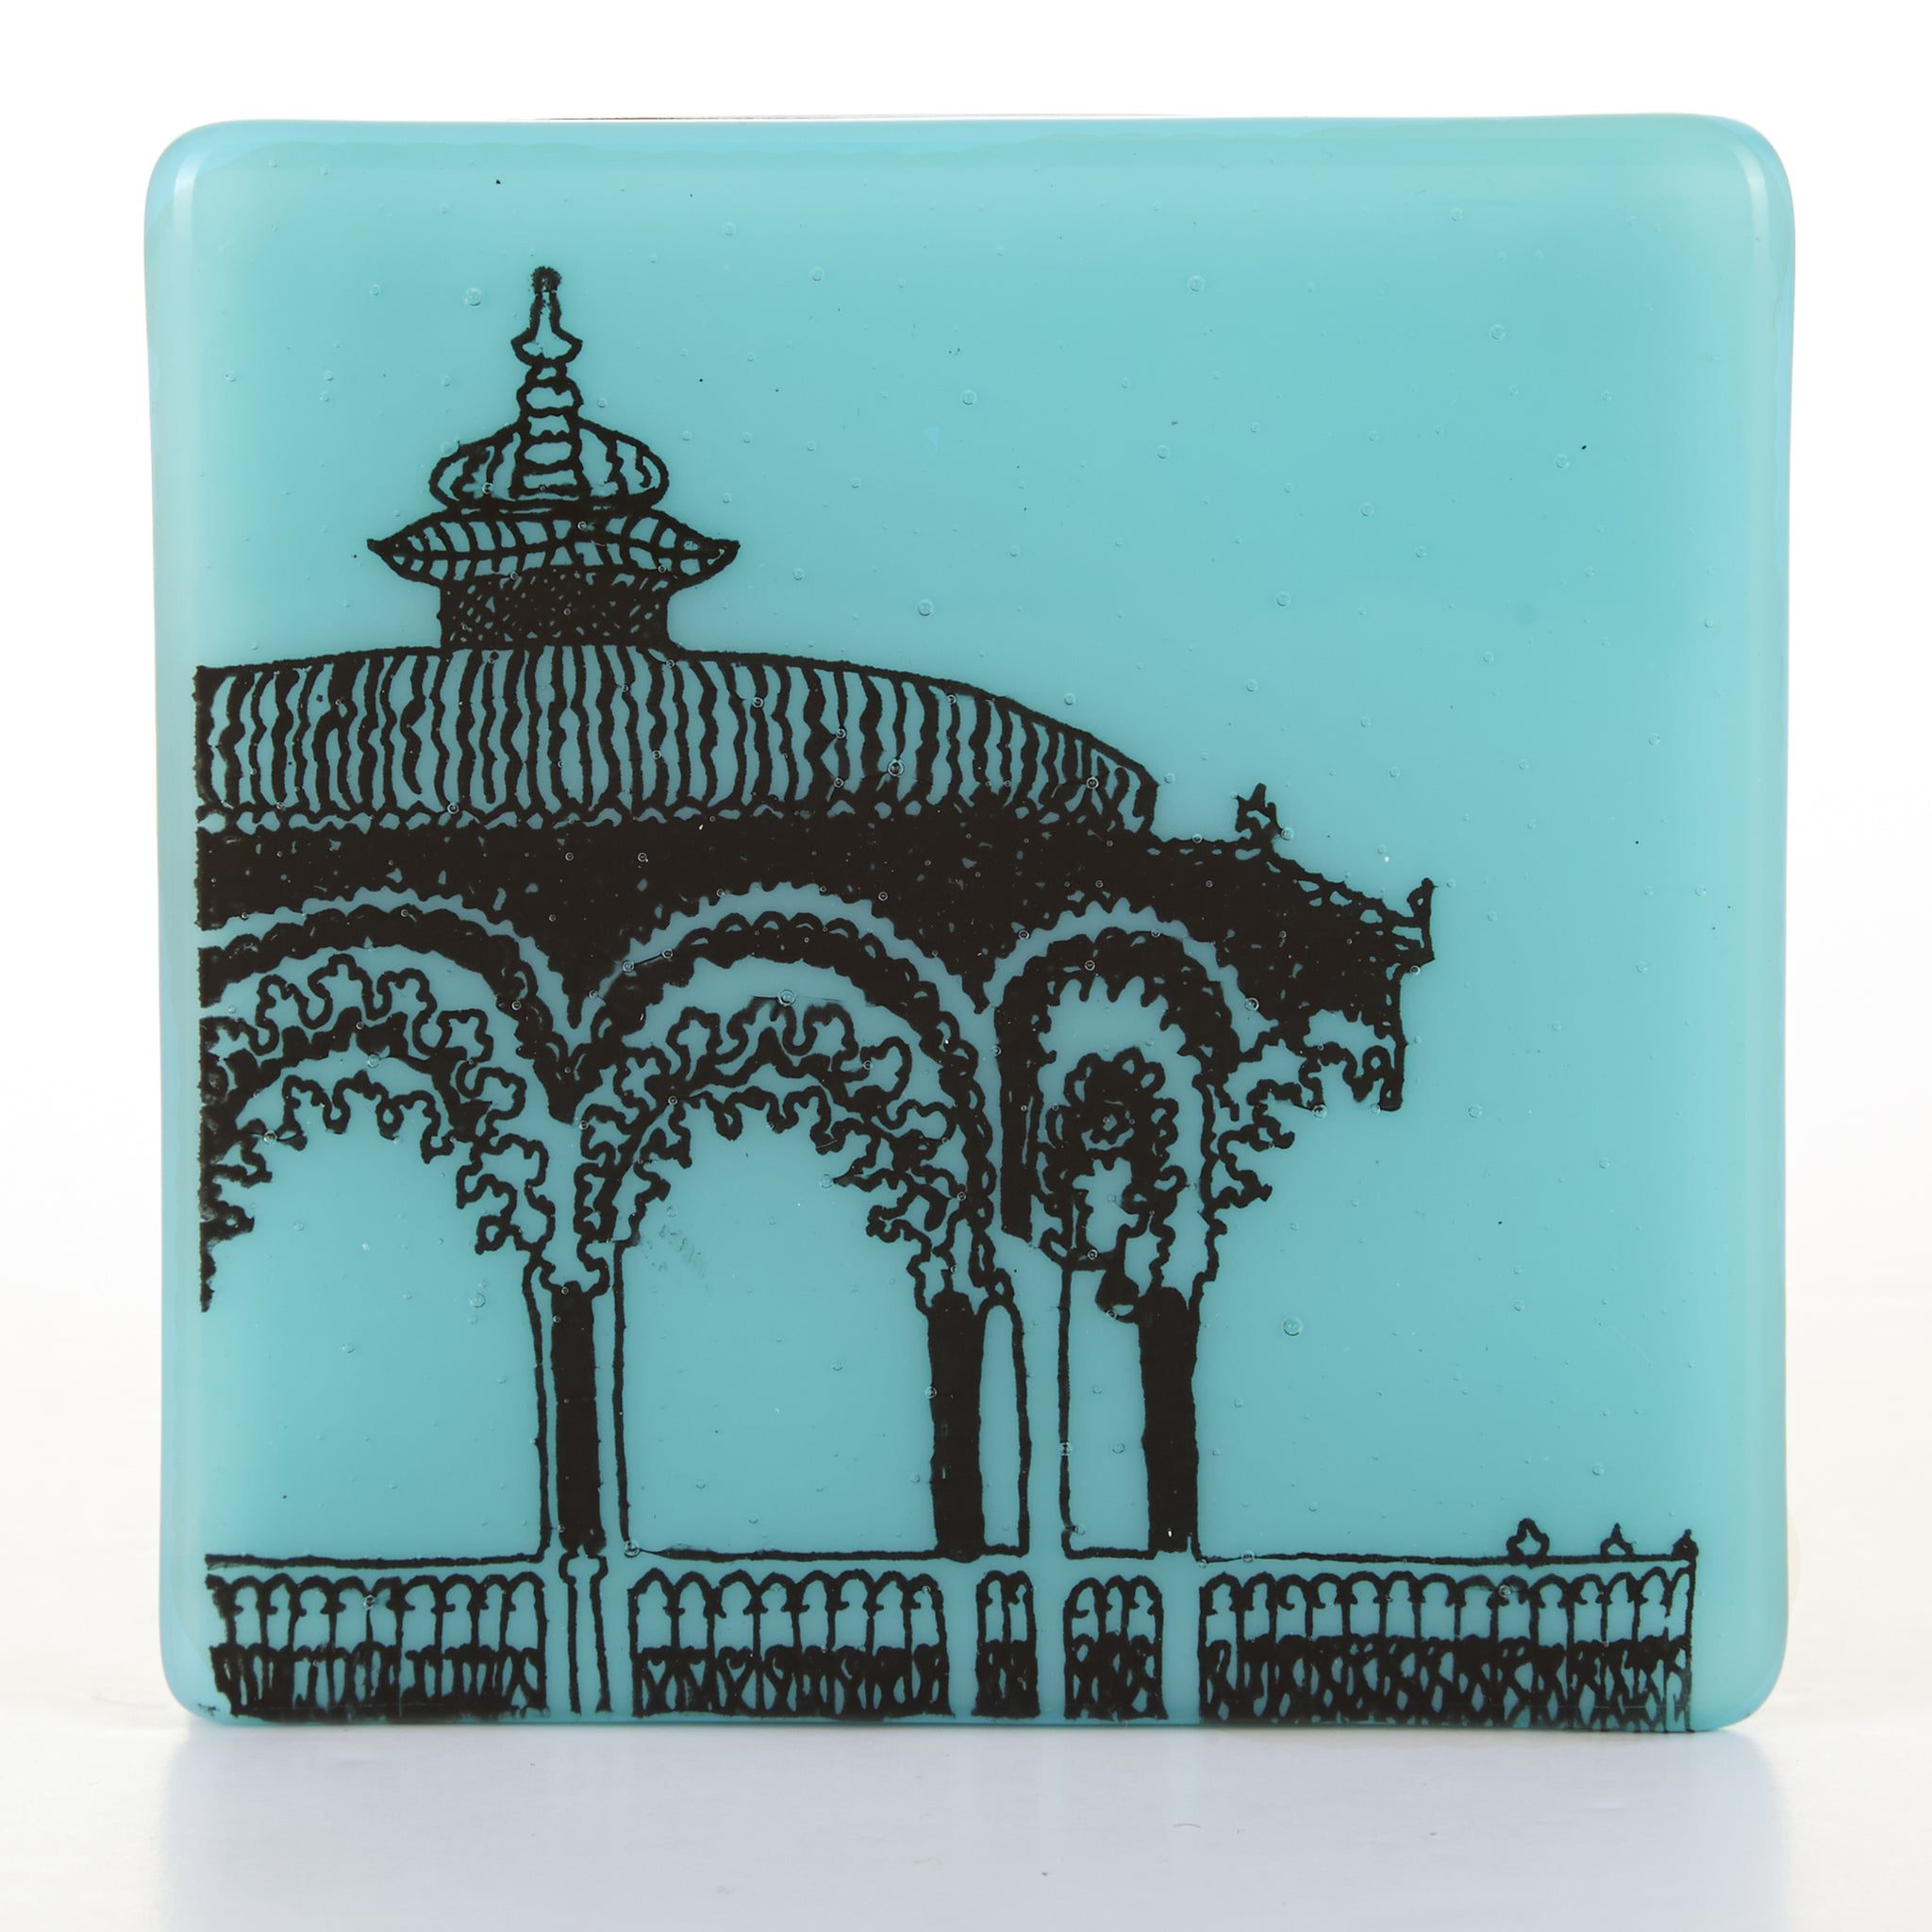 Brighton Bandstand Glass Coaster